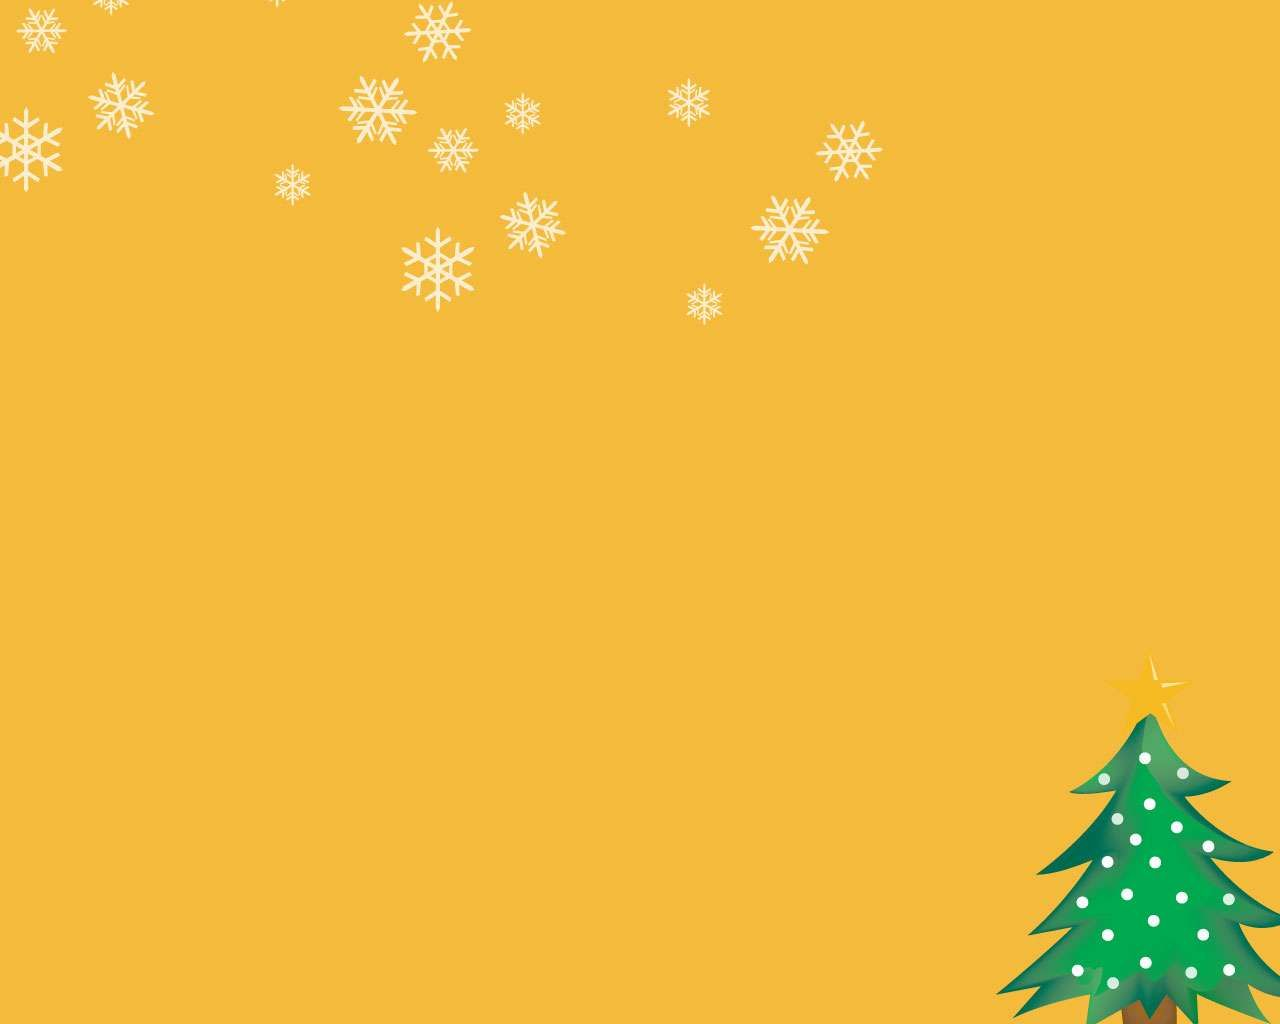 powerpoint christmas background | Christmas tree orange Free PPT ...